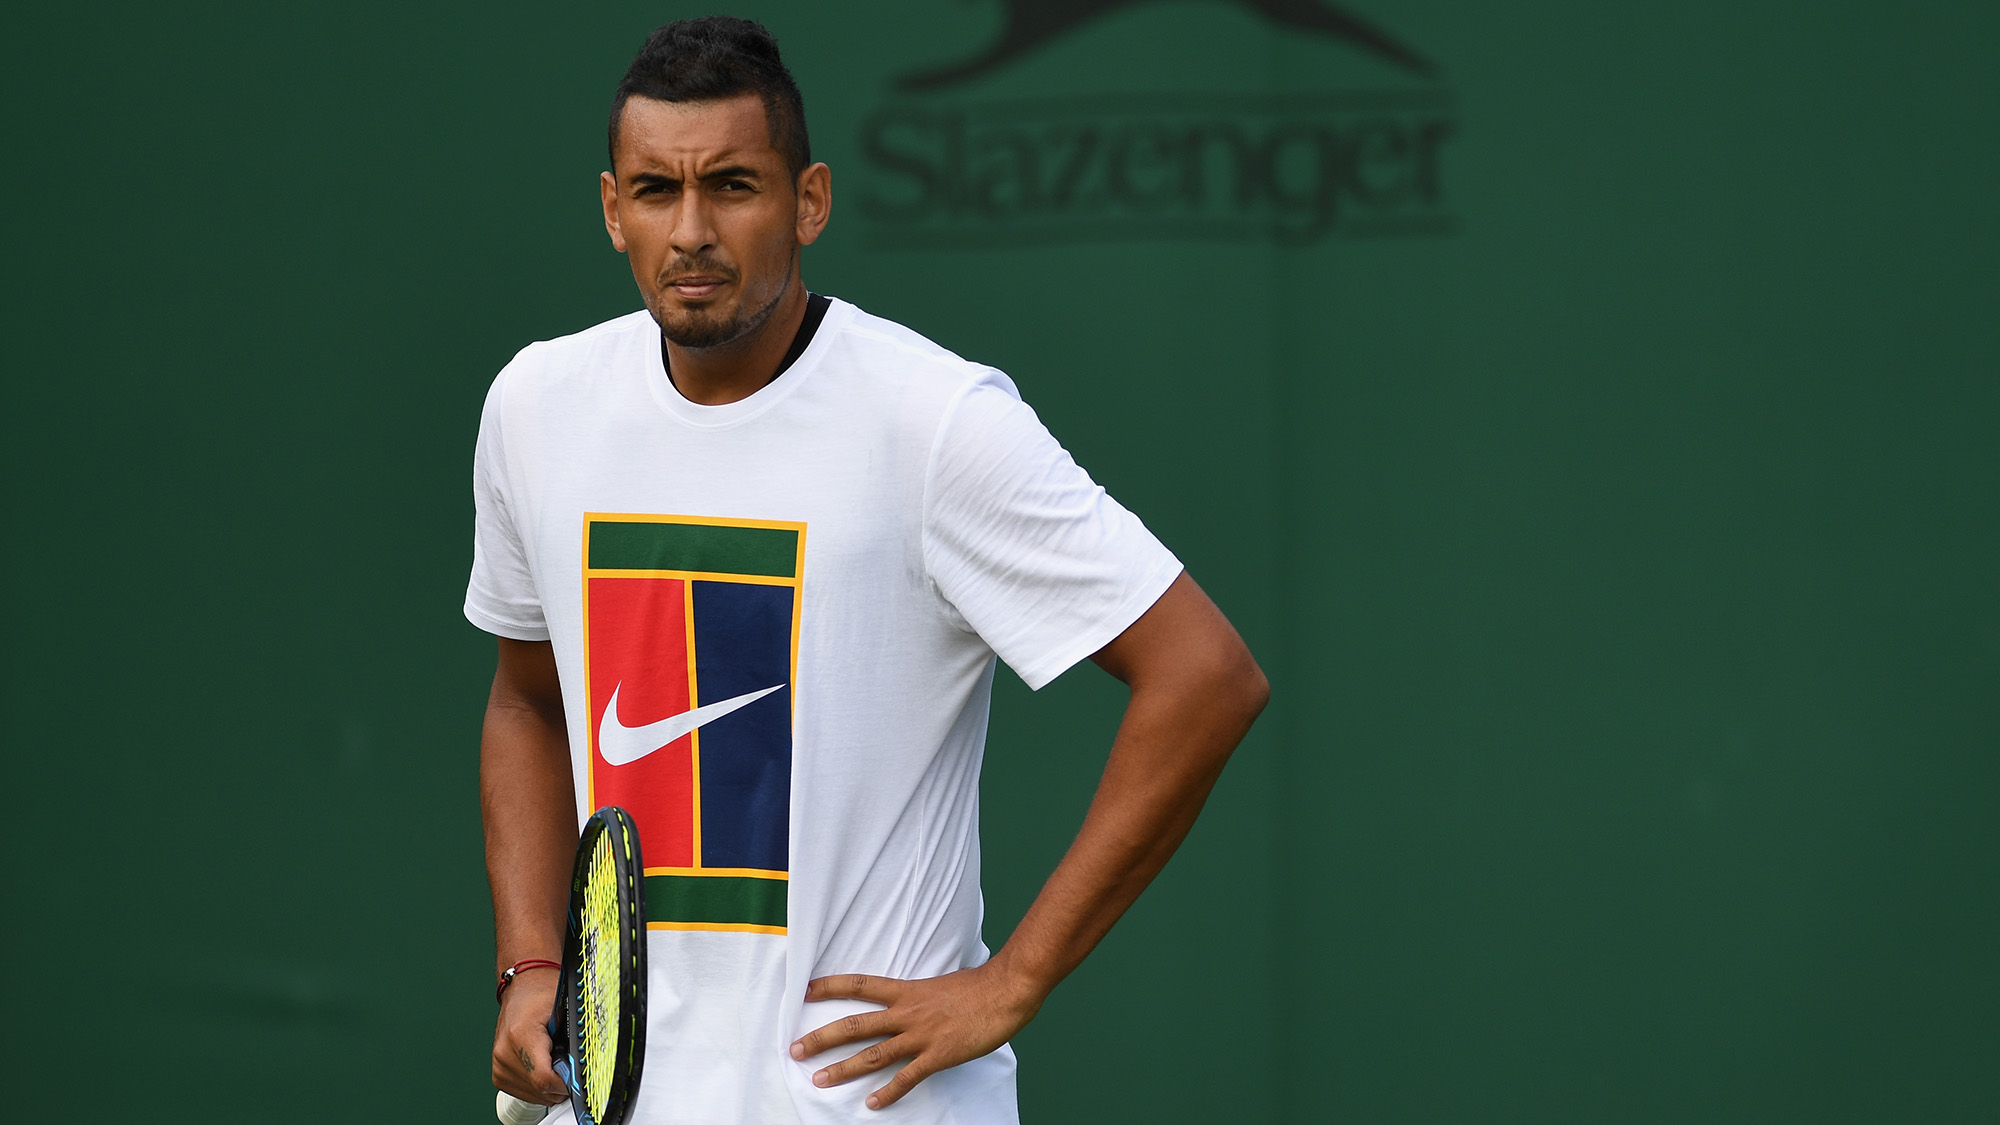 Father of tennis player furious she went on date with Nick Kyrgios